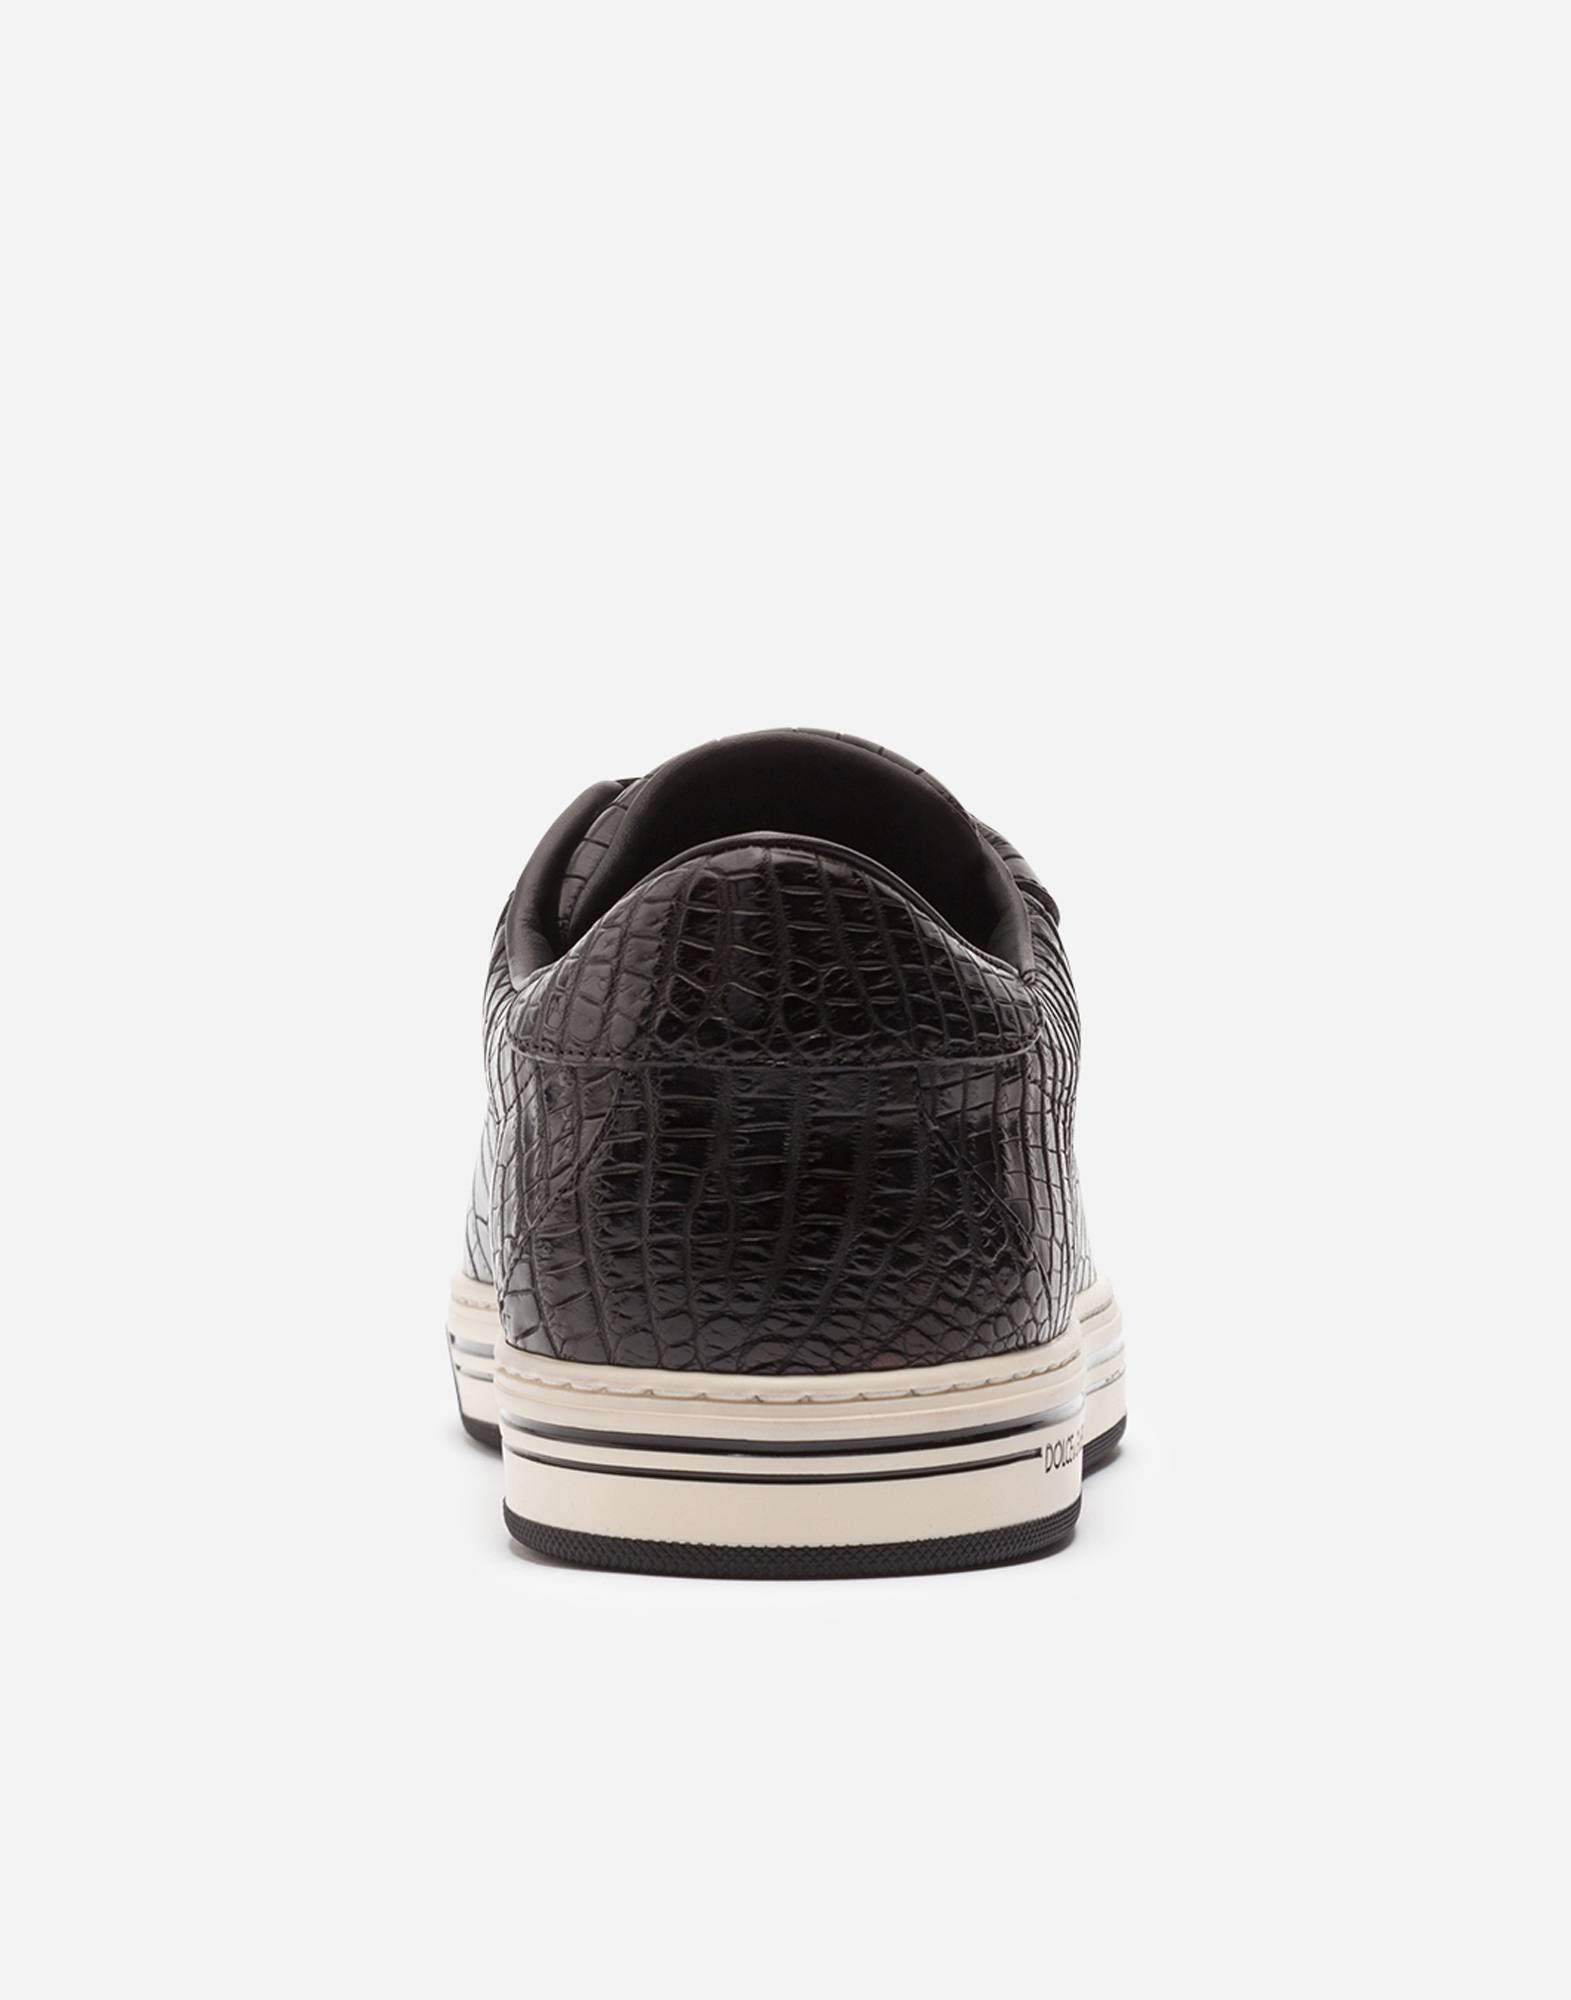 ROME SNEAKERS IN CROCODILE LEATHER